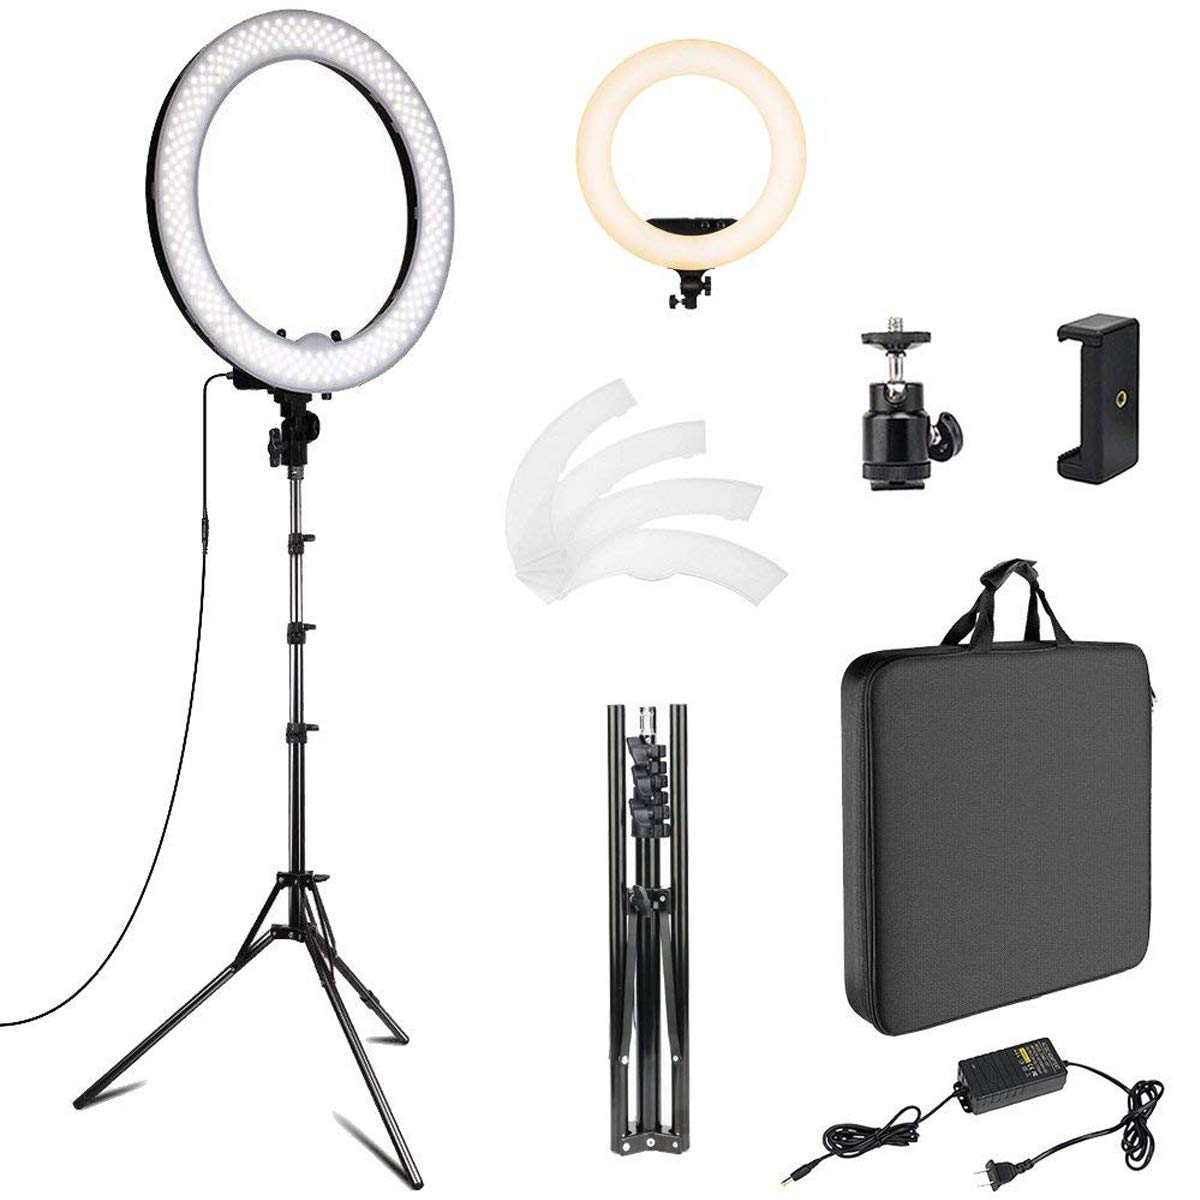 18 inch Photo Video Bi-Color LED Selfie Ring Beauty Light with Stand, LED Dimmable & Color Temperature Adjustable Makeup Circle Lighting Kit by Fstop Labs